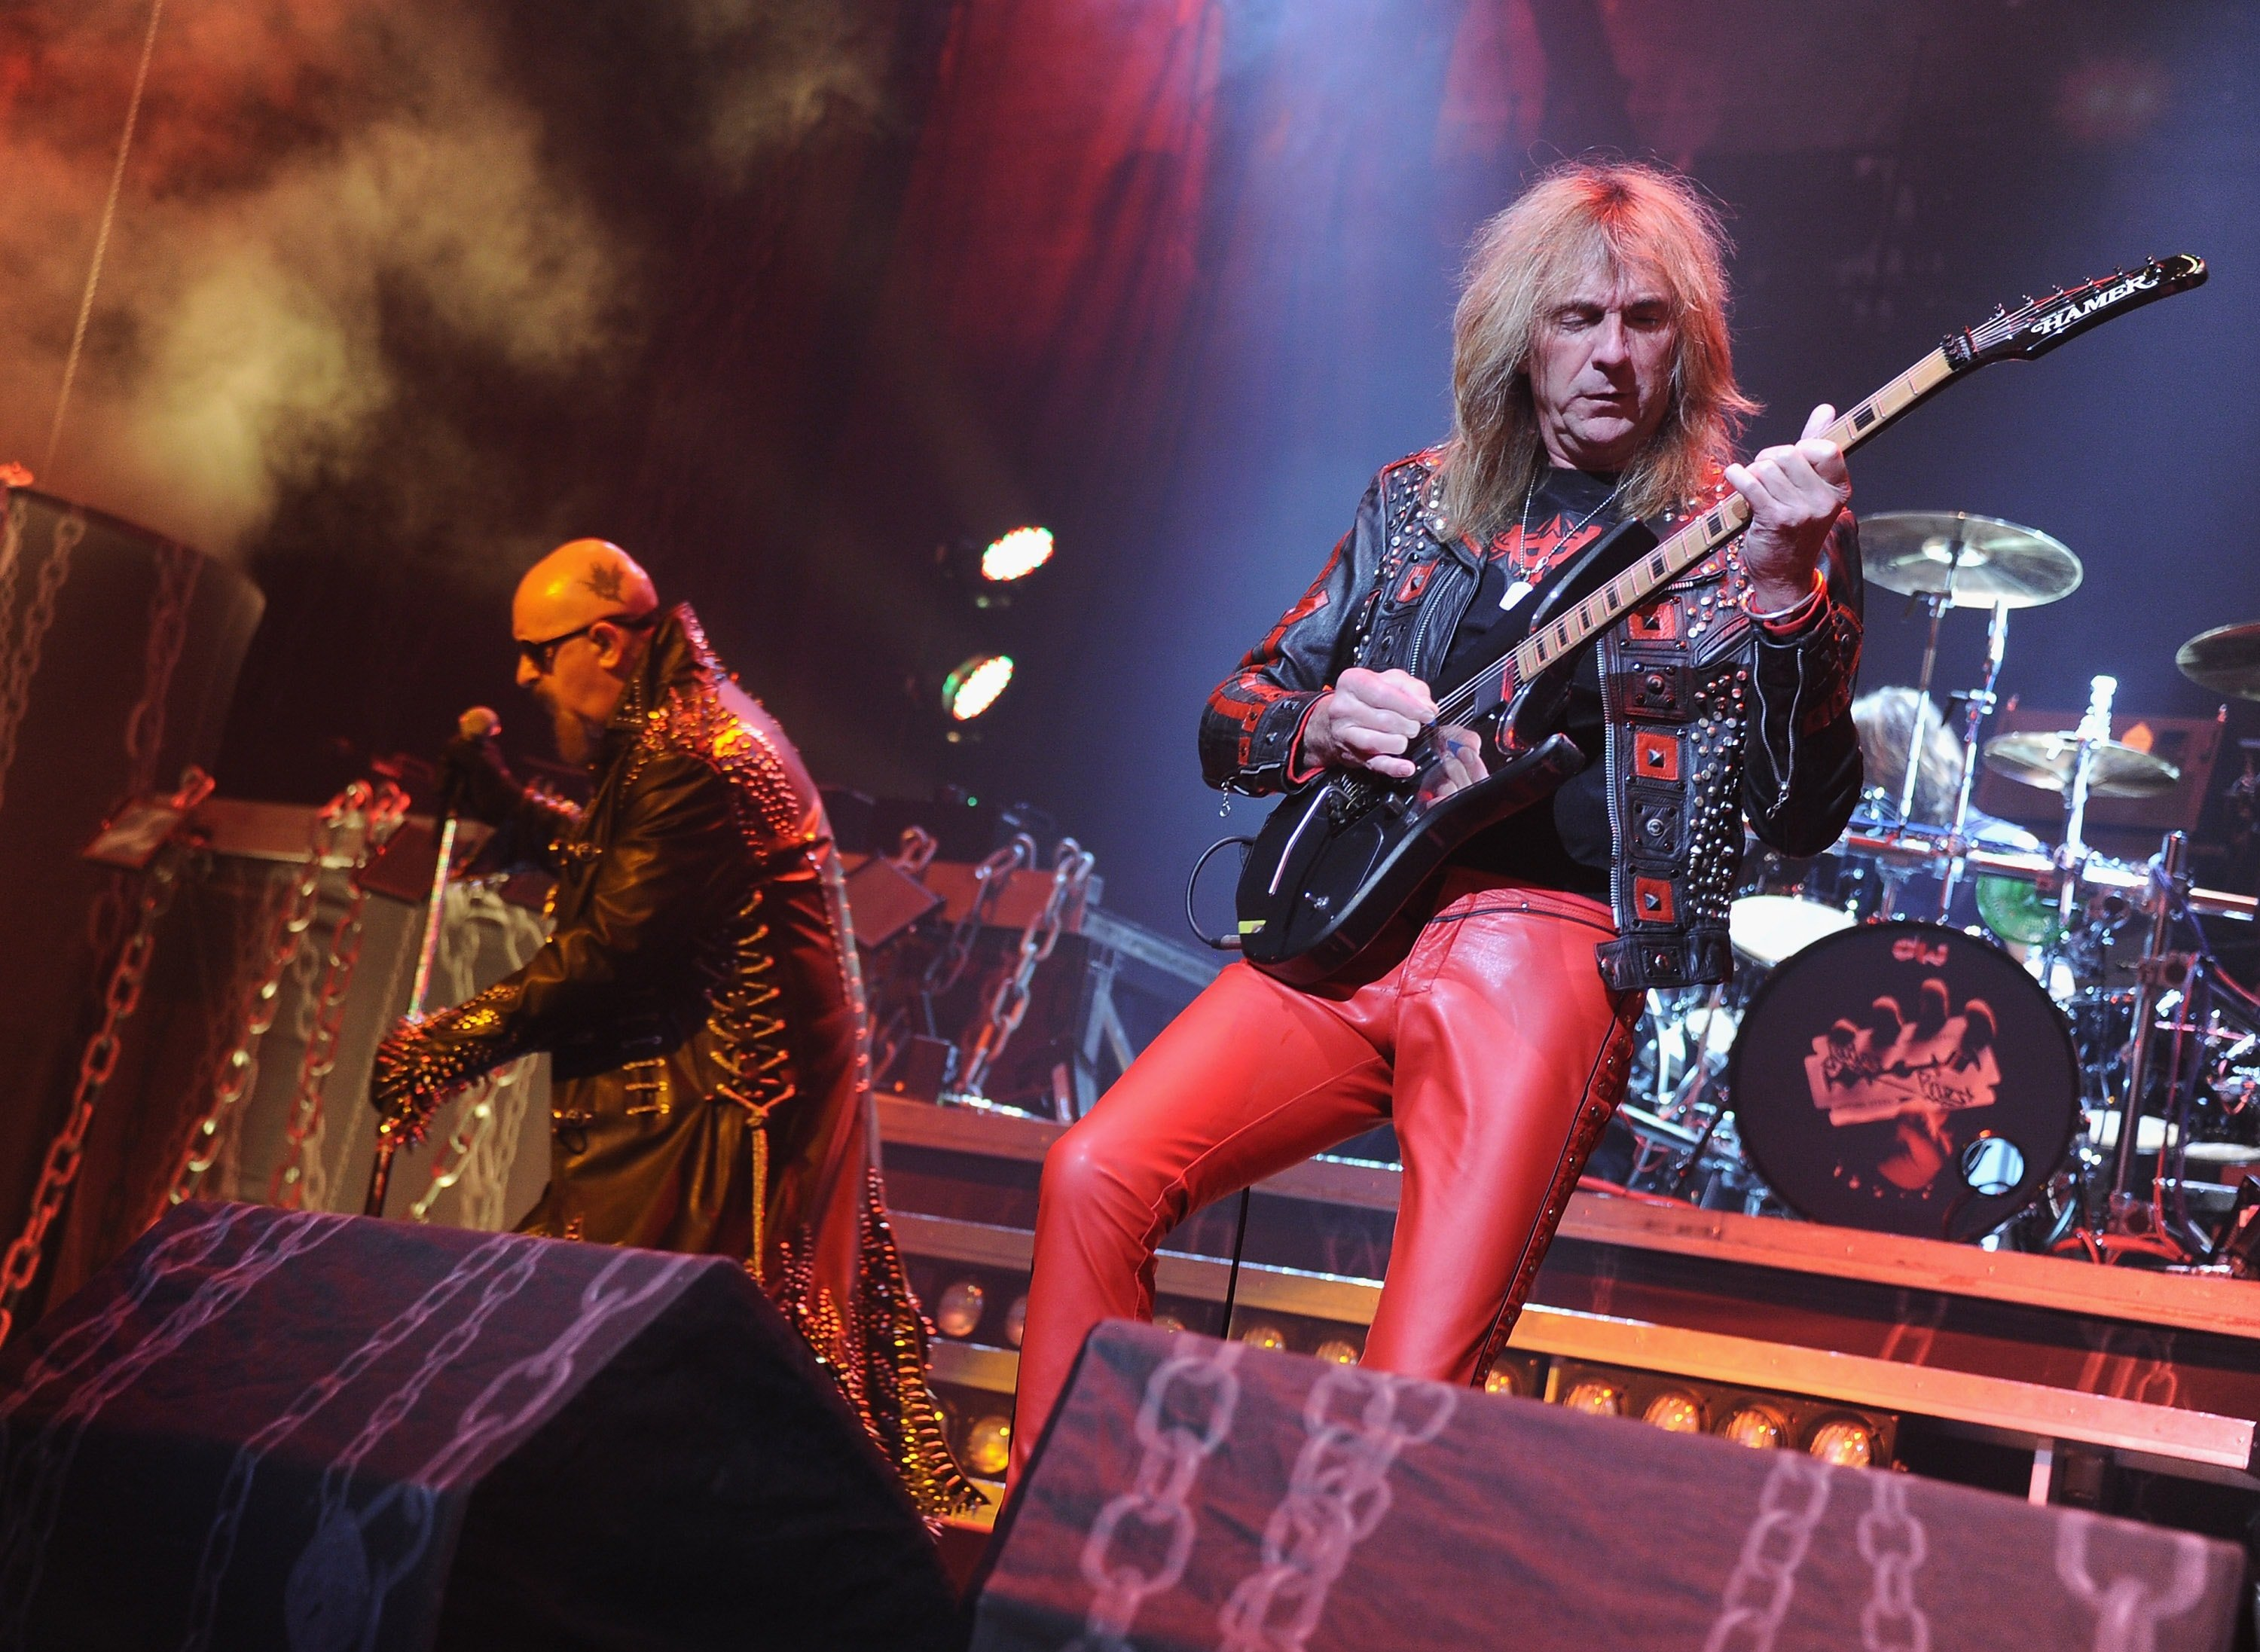 EAST RUTHERFORD, NJ - NOVEMBER 18: Rob Halford and Glenn Tipton of Judas Priest perform at the Izod Center on November 18, 2011 in East Rutherford, New Jersey.